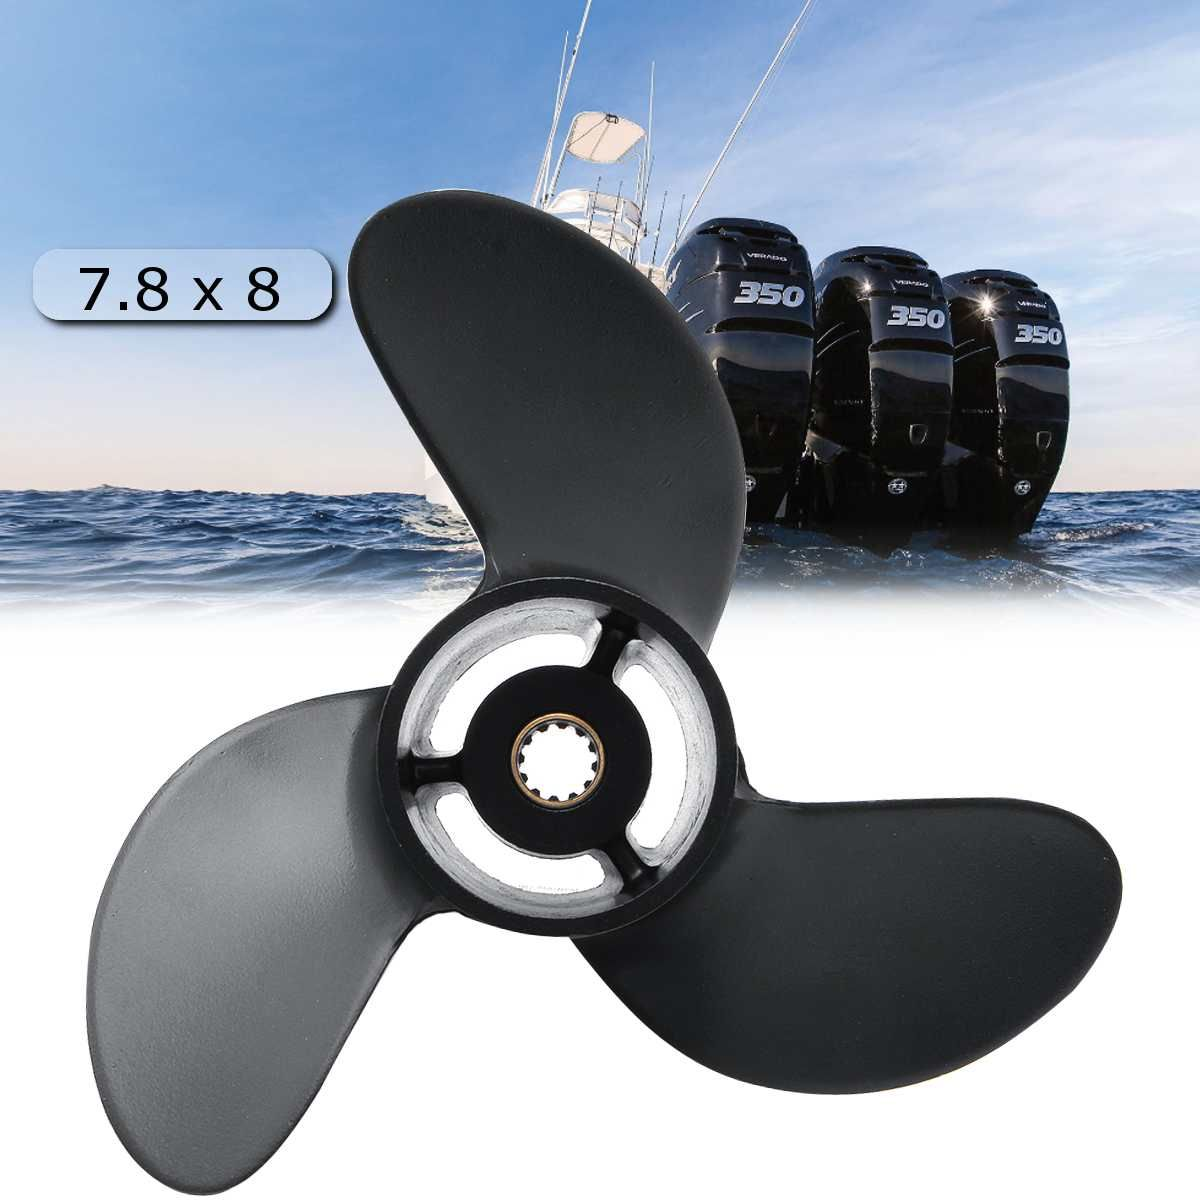 Outboard Propeller 3R1W64516-0 7.8 x 8 For Tohatsu Nissan-Mercury 4-6HP Black 3 Blades 12 Spline Tooth Aluminum Alloy R Rotation